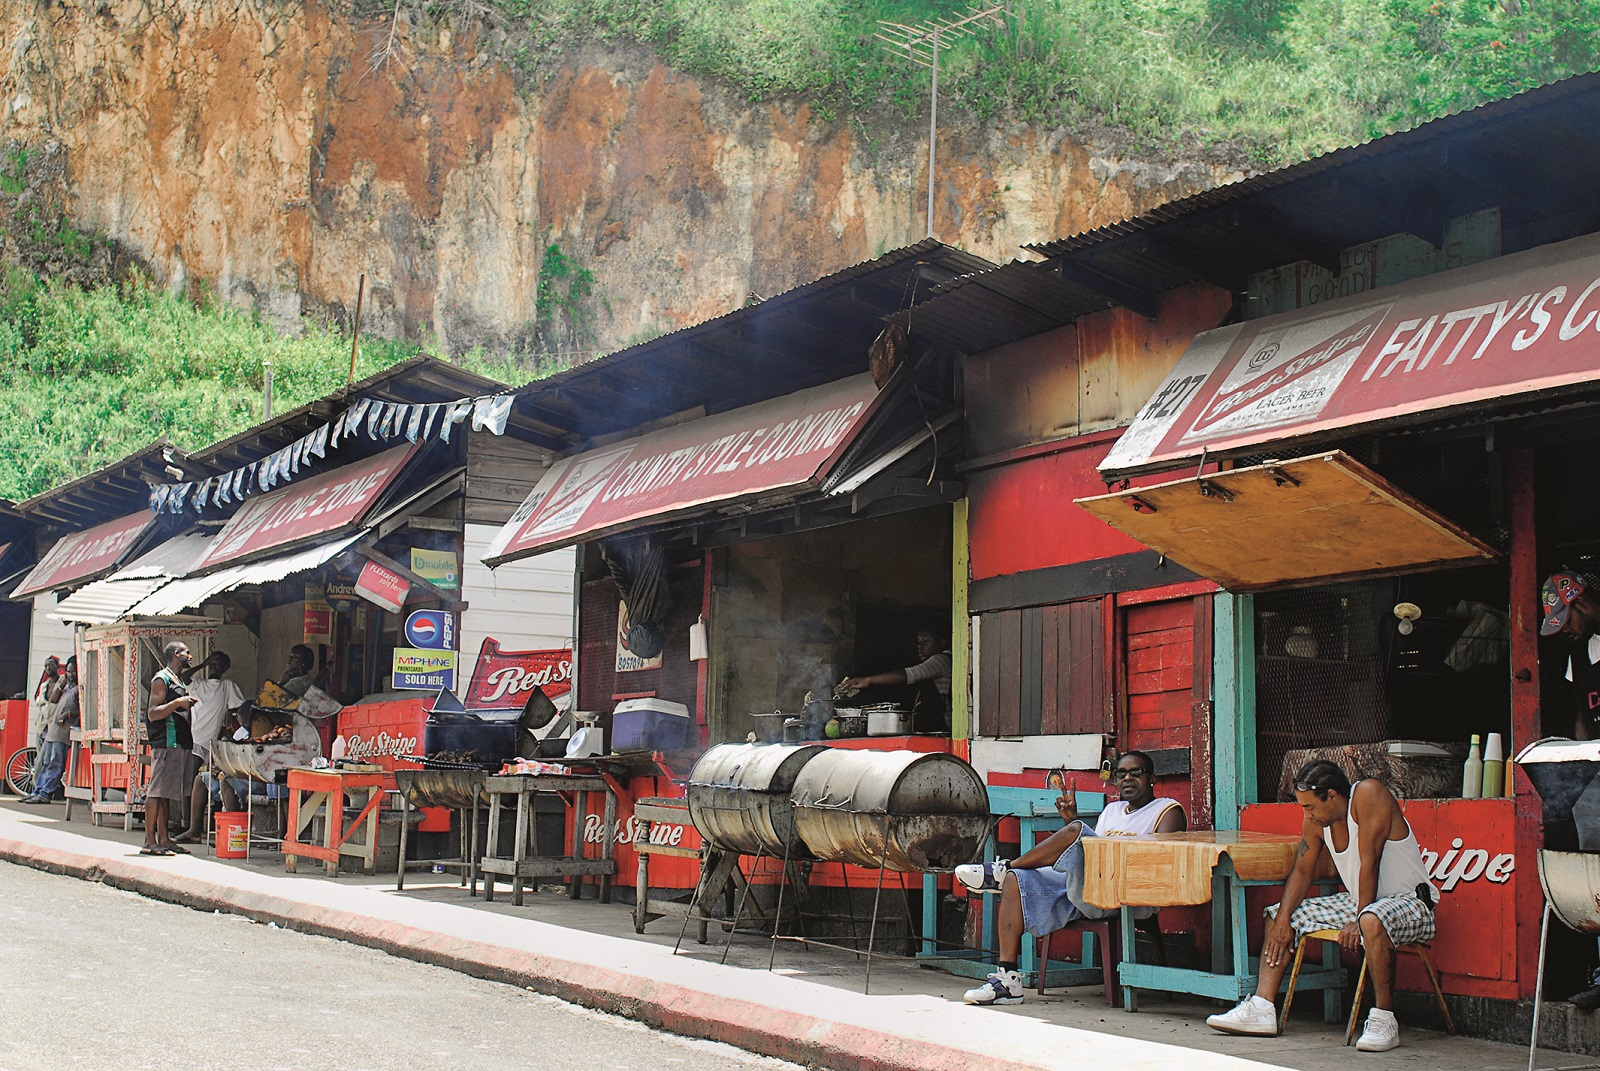 June 4, 2006, Faith'S Pen, St. Ann, Jamaica: Faith's Pen in the parish of St. Ann features roadside stalls that sell jerk chicken and other local Jamaican dishes., Image: 495866426, License: Rights-managed, Restrictions: , Model Release: no, Credit line: Richard Sitler / Zuma Press / Profimedia